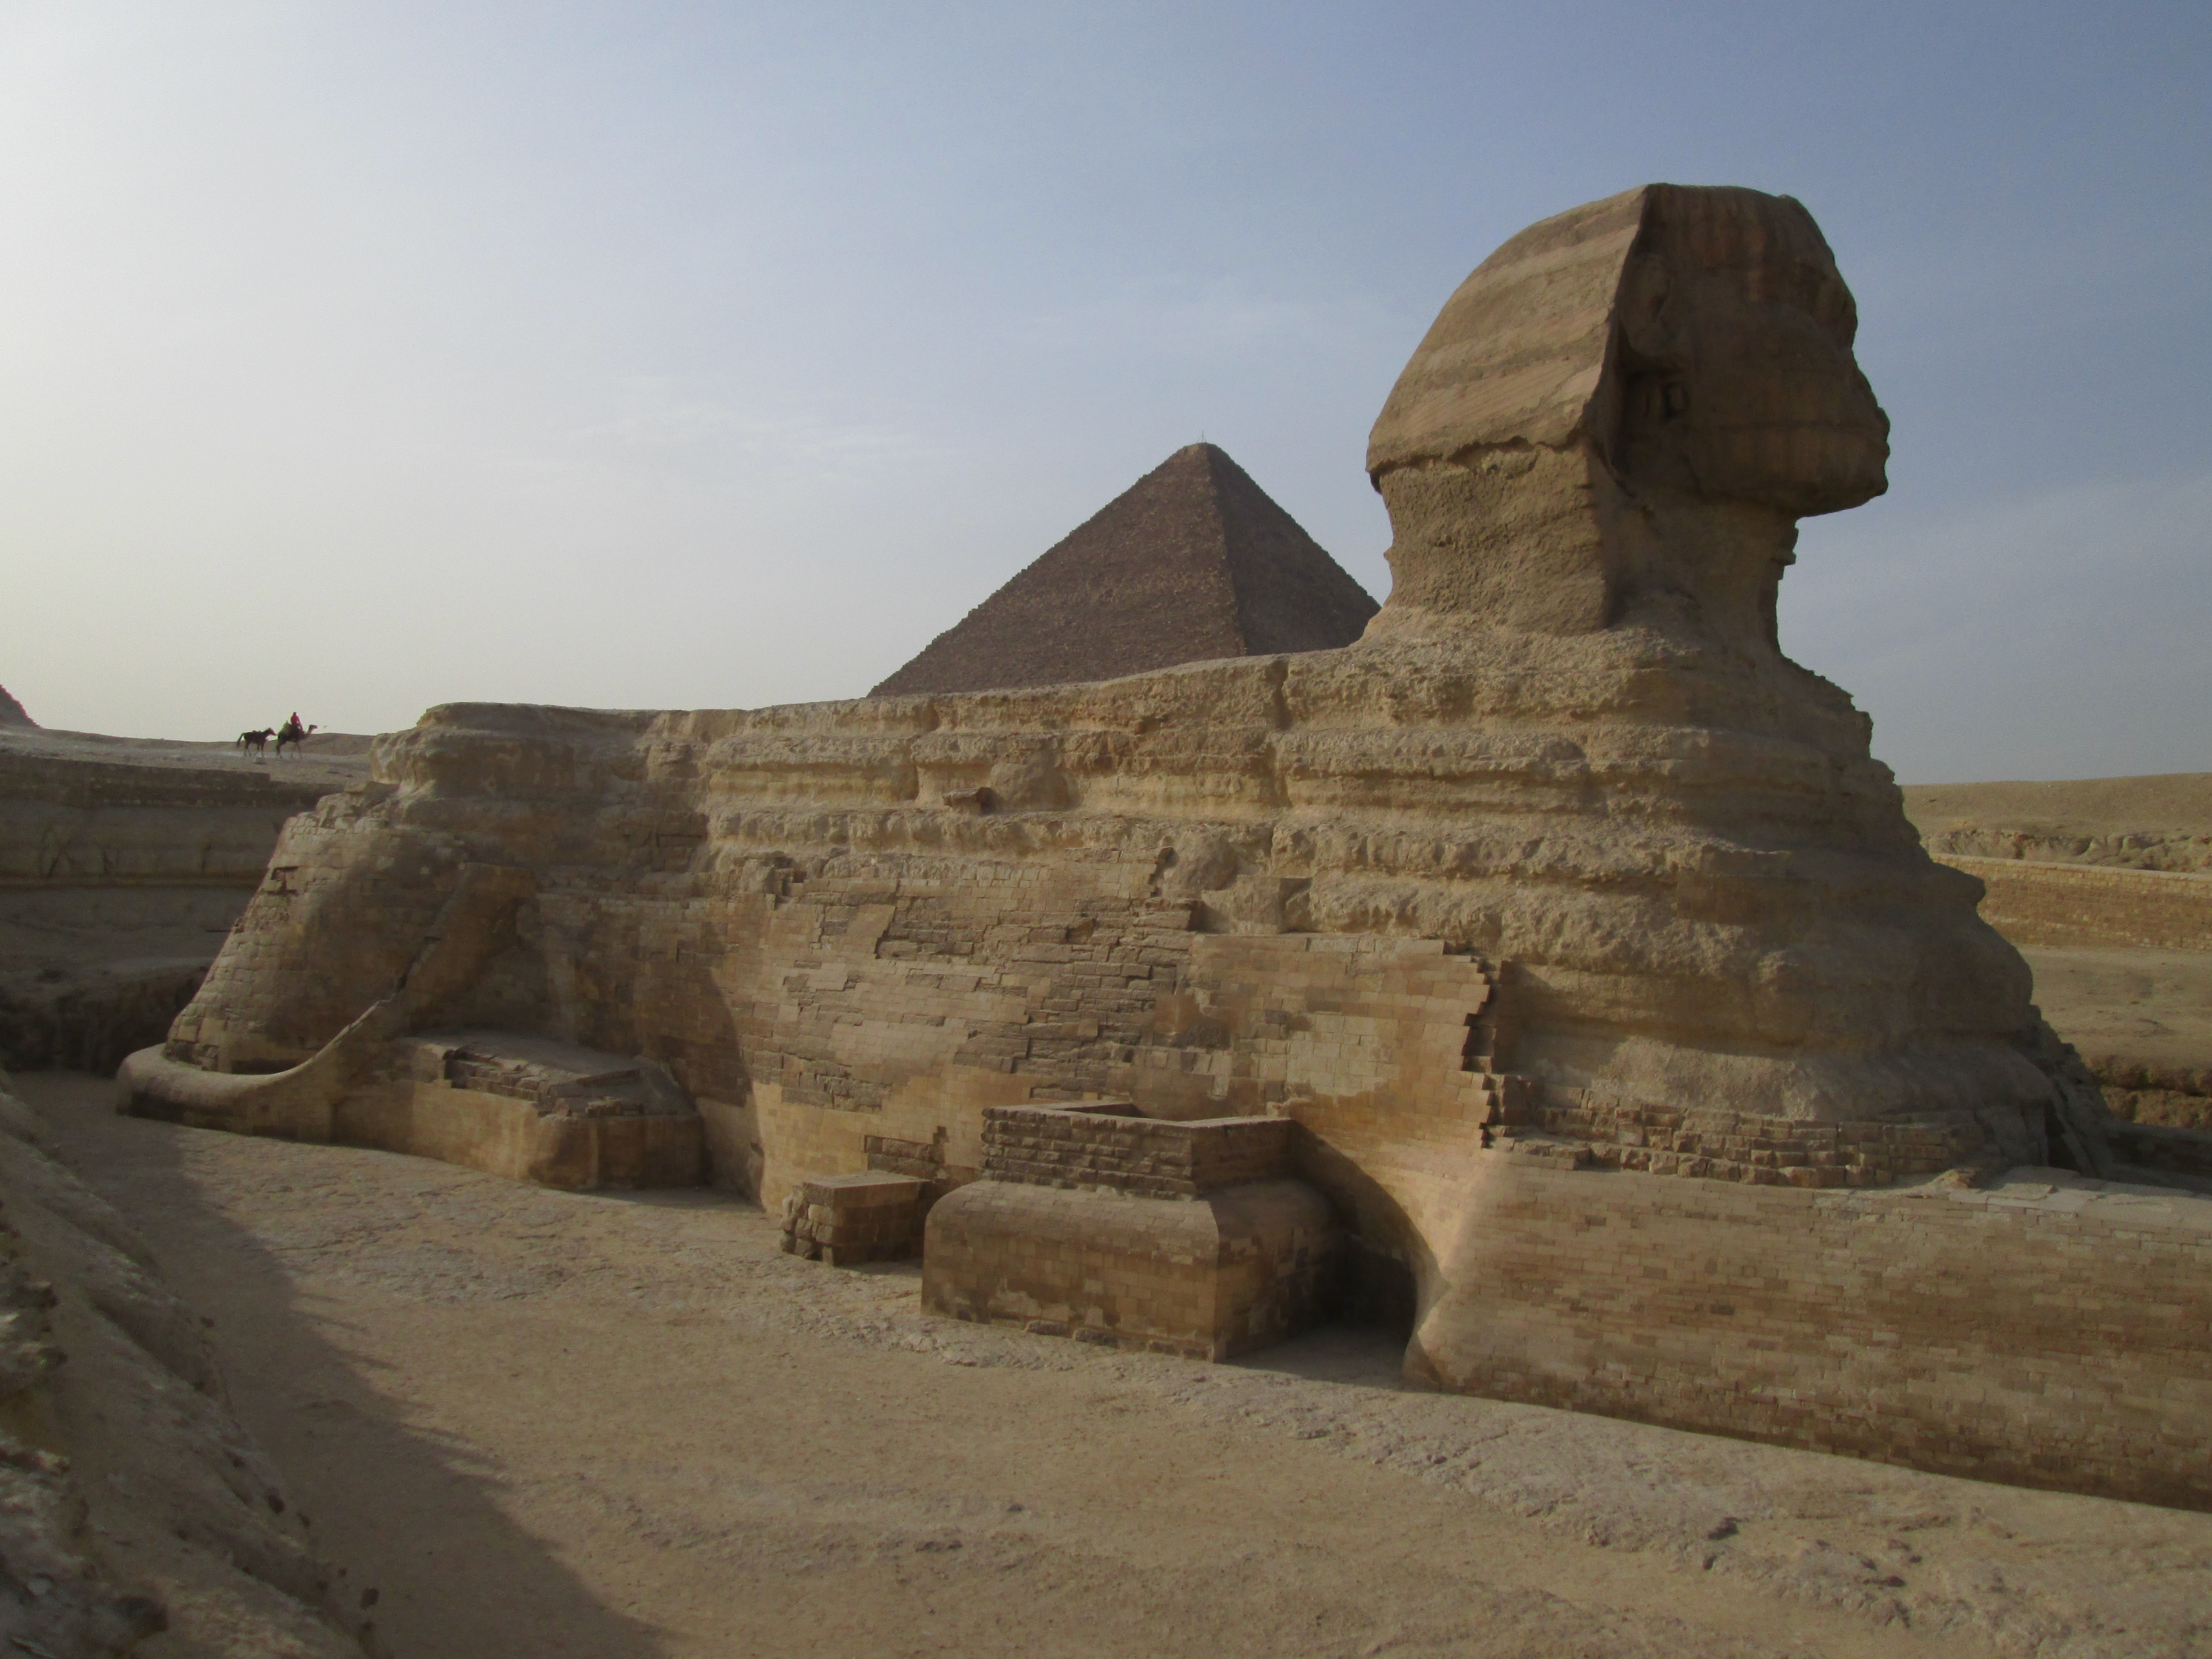 great sphinx research paper View griffin and sphinx iconography in antiquity research papers on academiaedu for free.